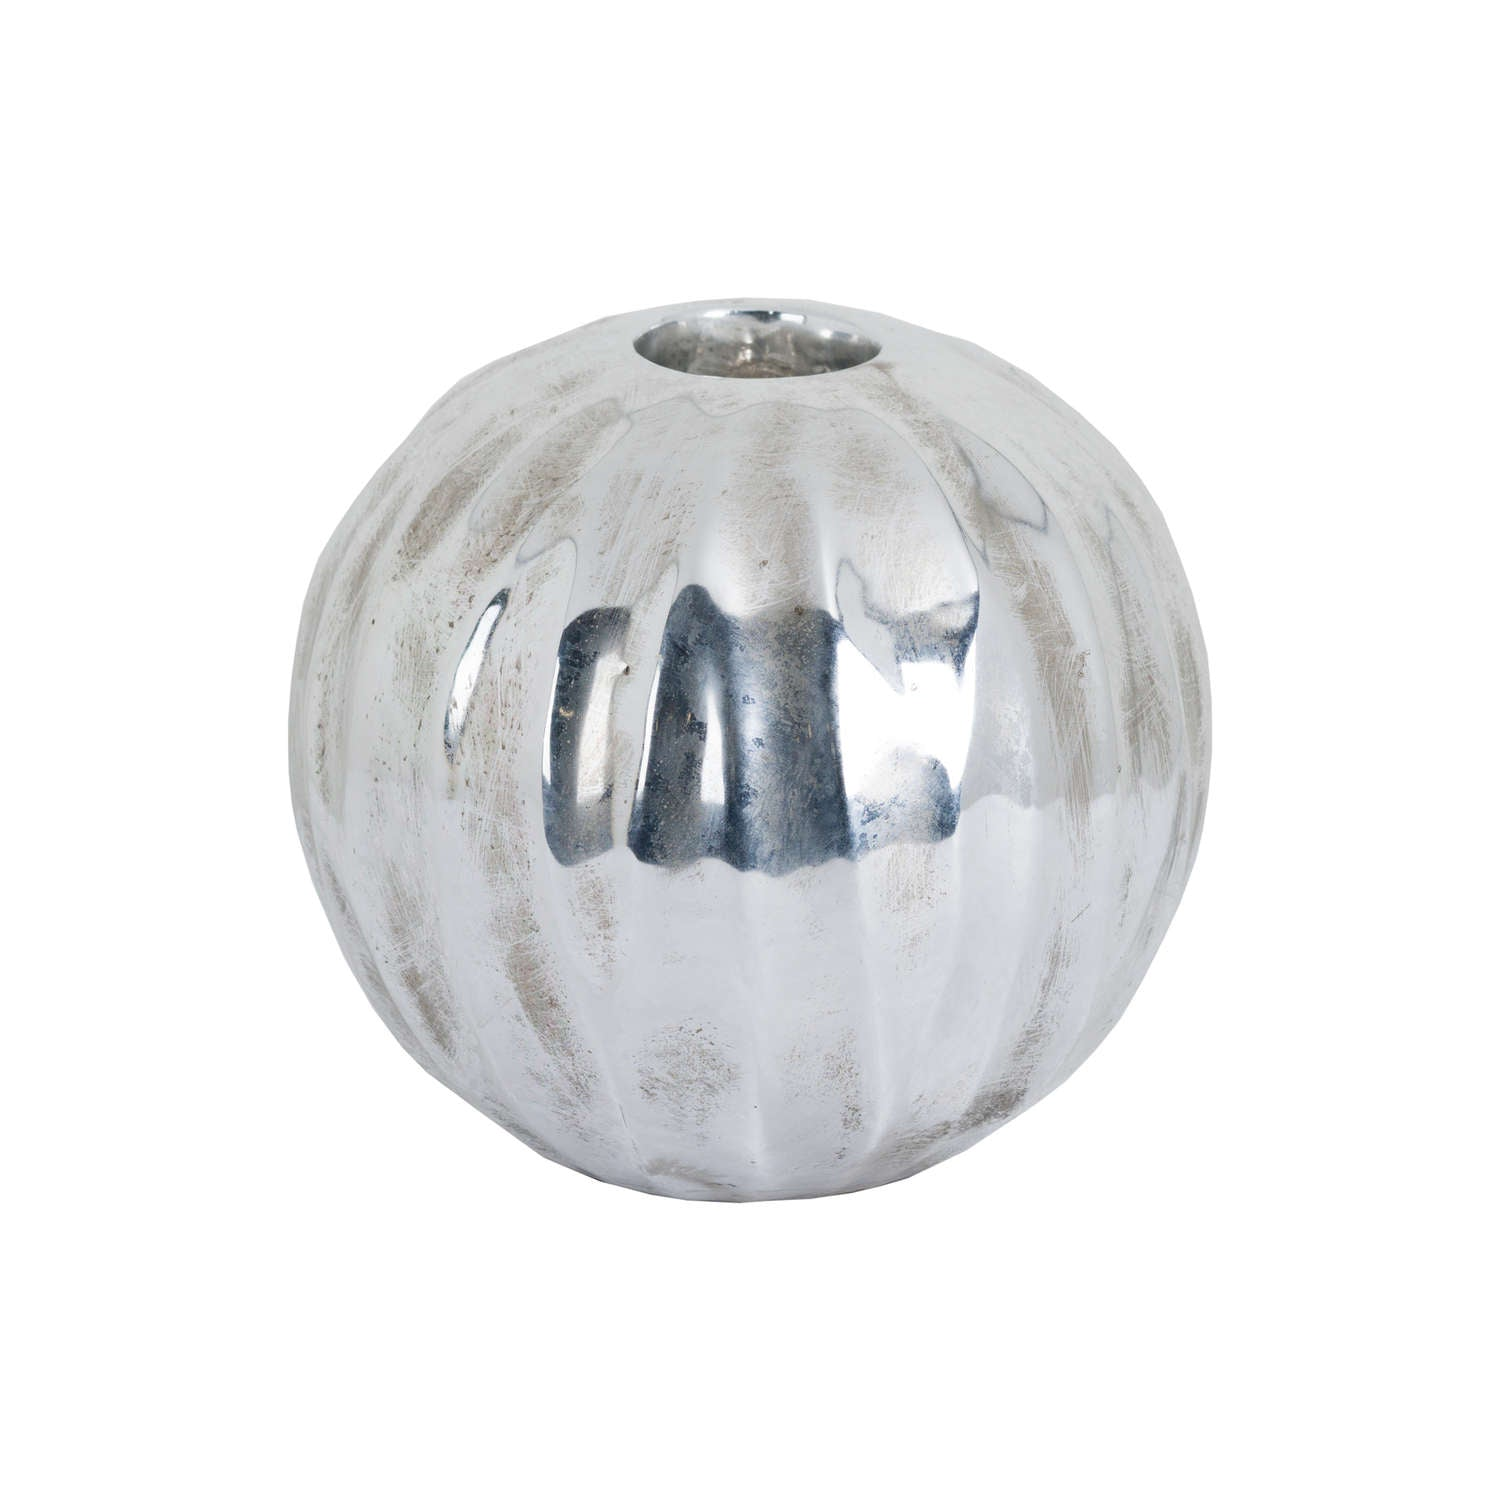 Large Spherical Detailed Metallic Ceramic Tealight Holder